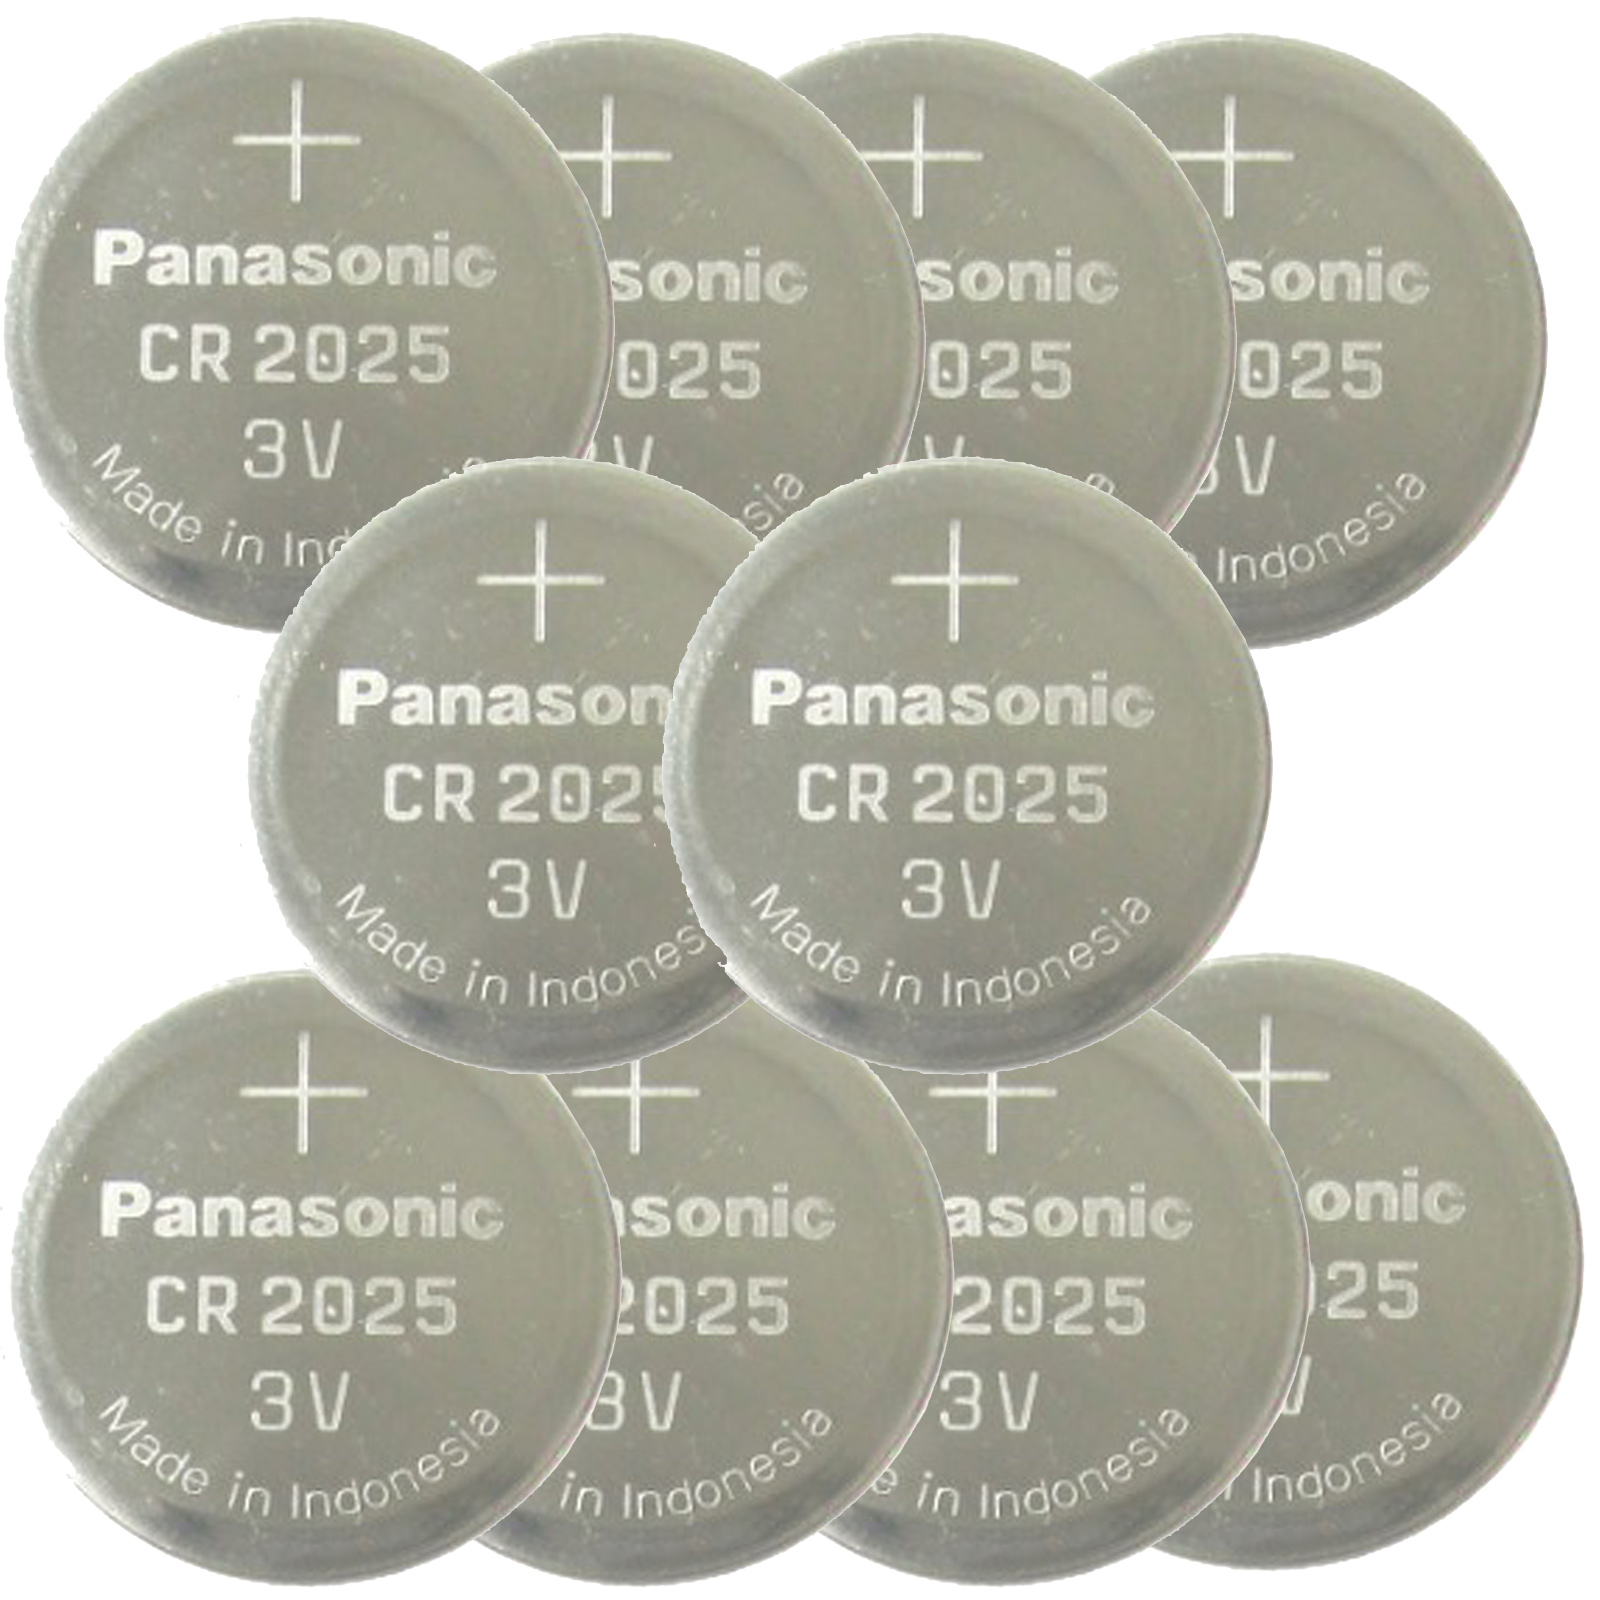 10 Pcs Panasonic Cr2025 3v Lithium Coin Cell Battery Fast